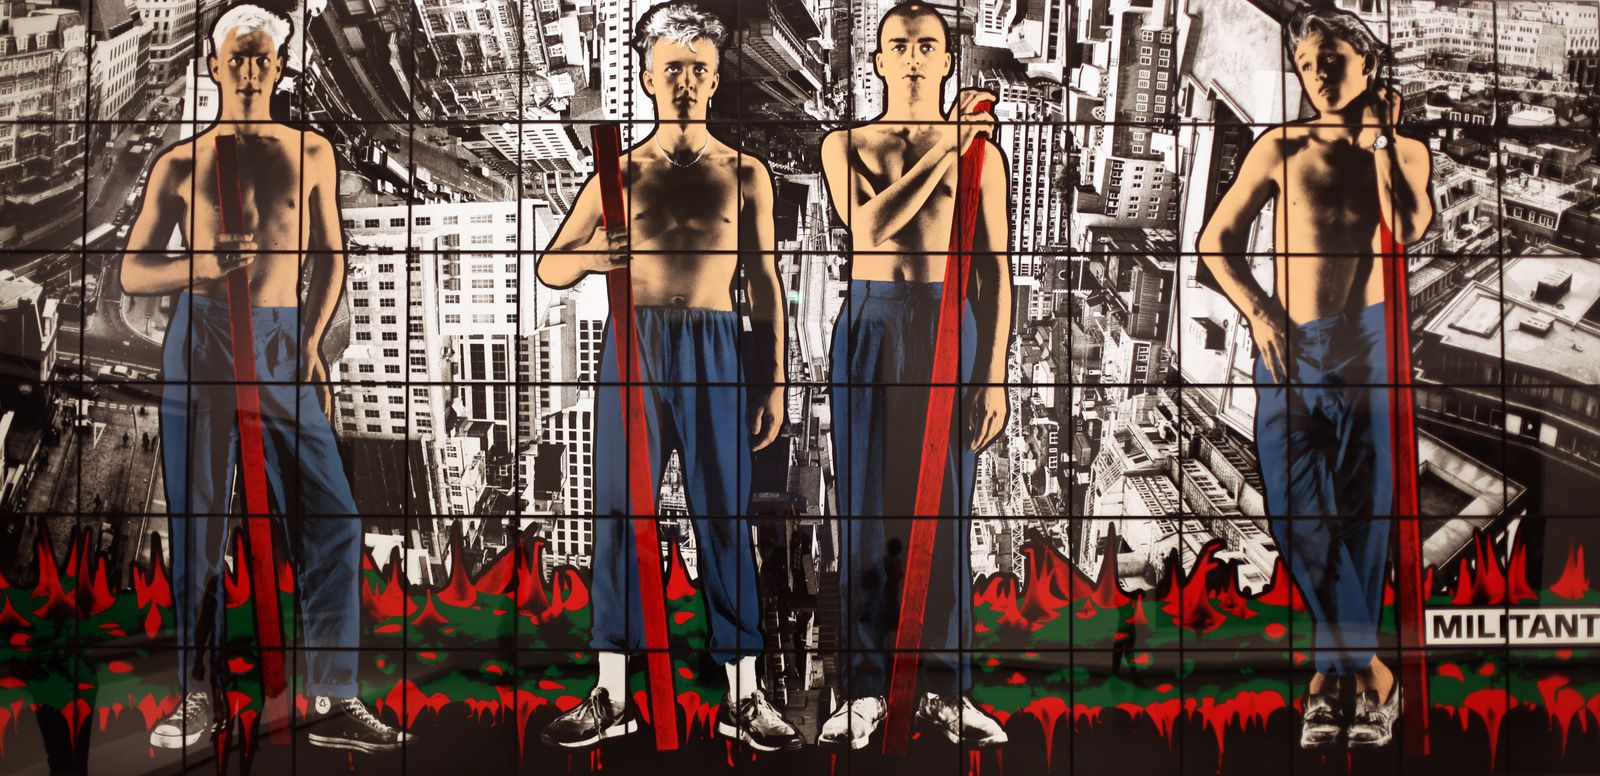 """Militant', 1986 de Gilbert & George © Photo Éric Simon"